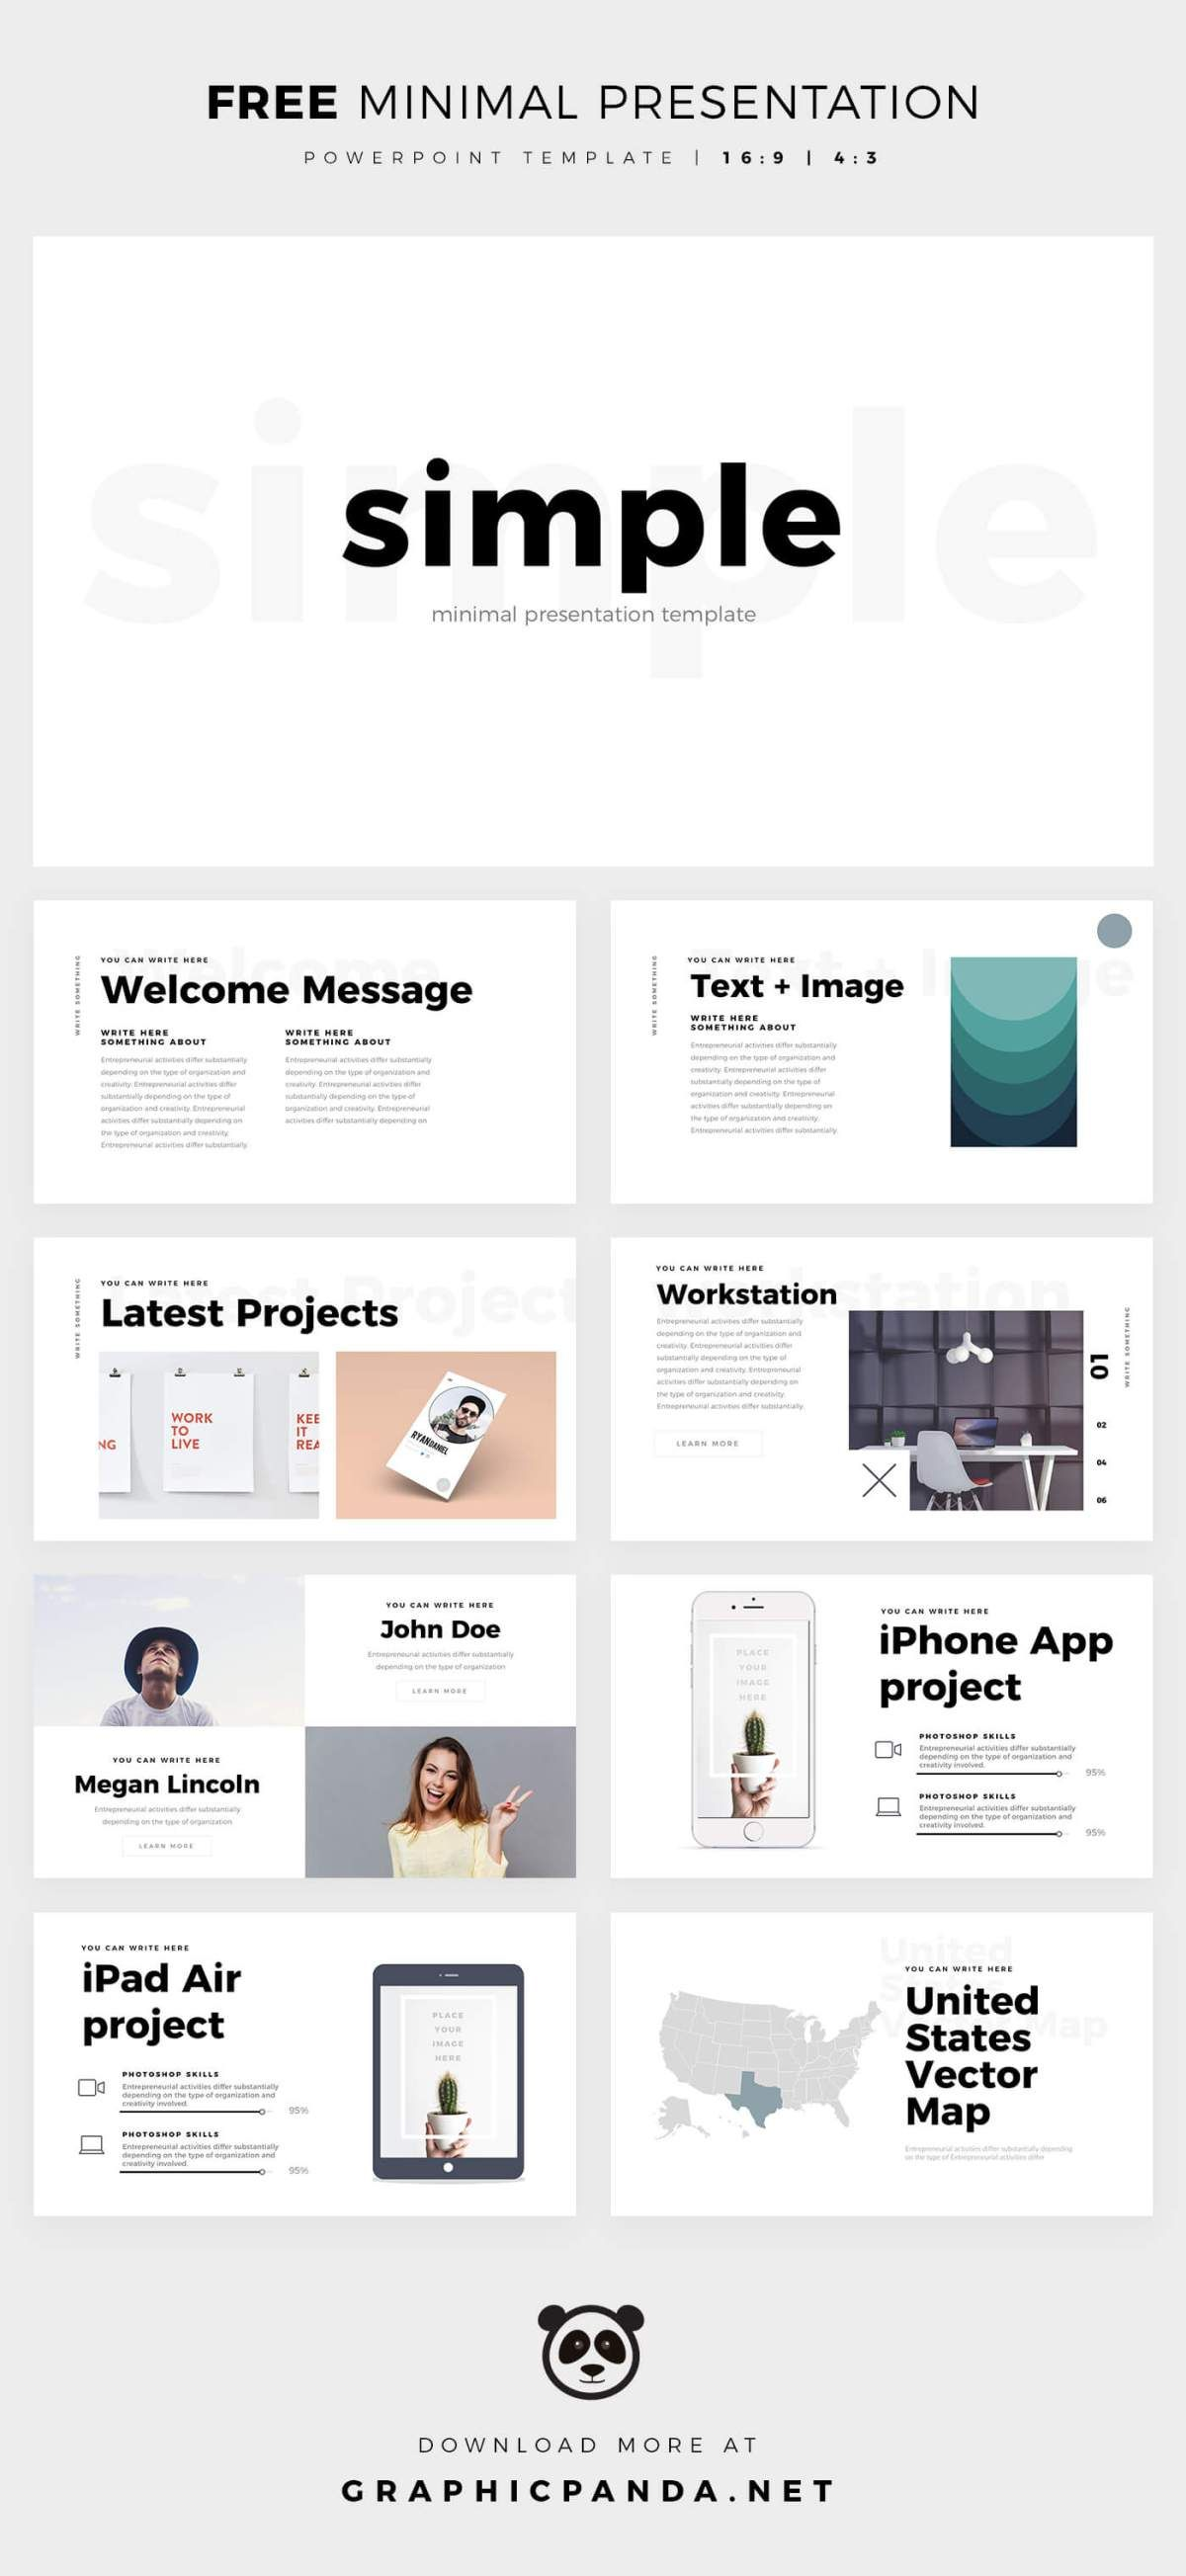 Powerpoint templates pinterest powerpoint templates toneelgroepblik